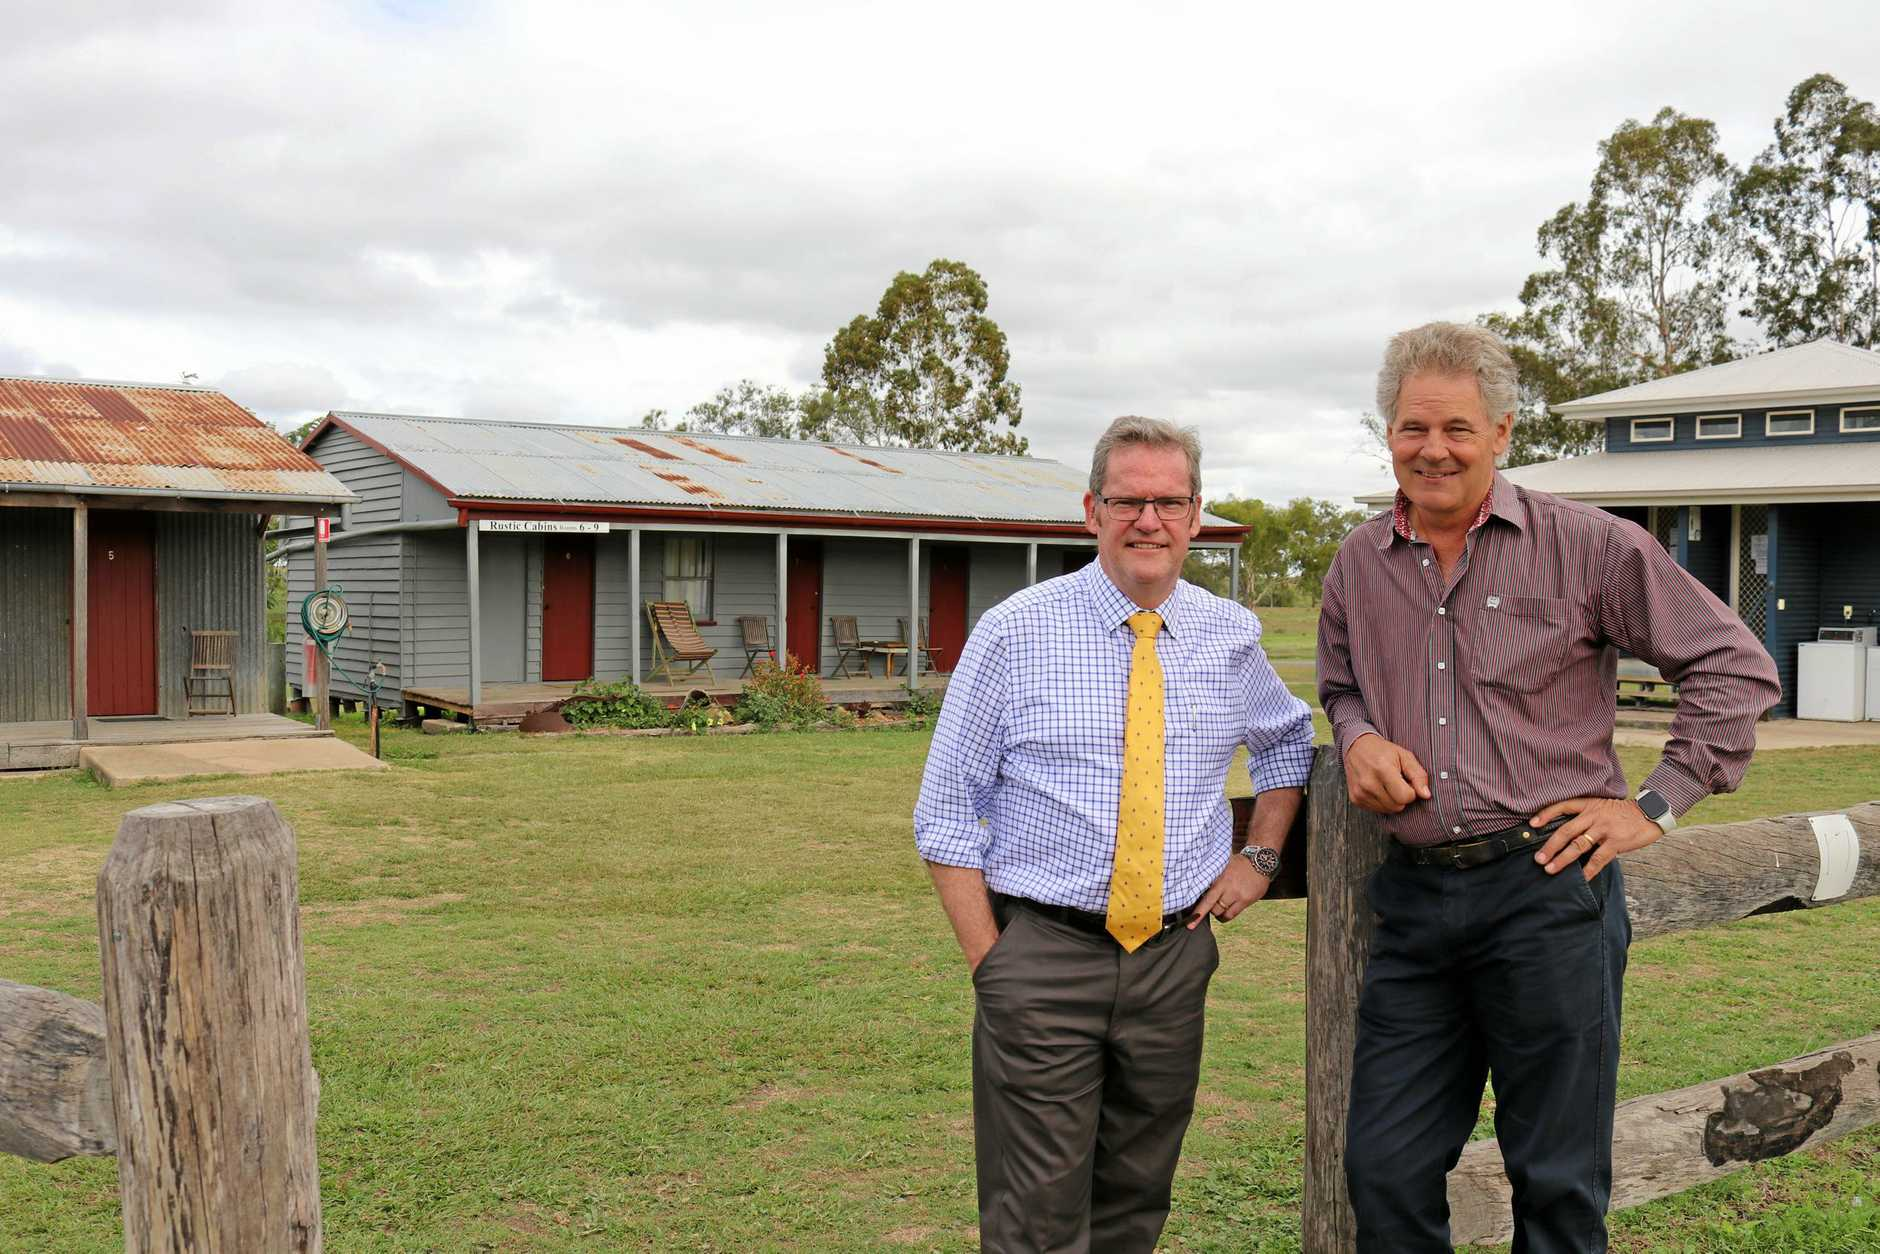 John McVeigh and Councillor Mike Williams at the Rustic Cabins accommodation at Jondaryan Woolshed.